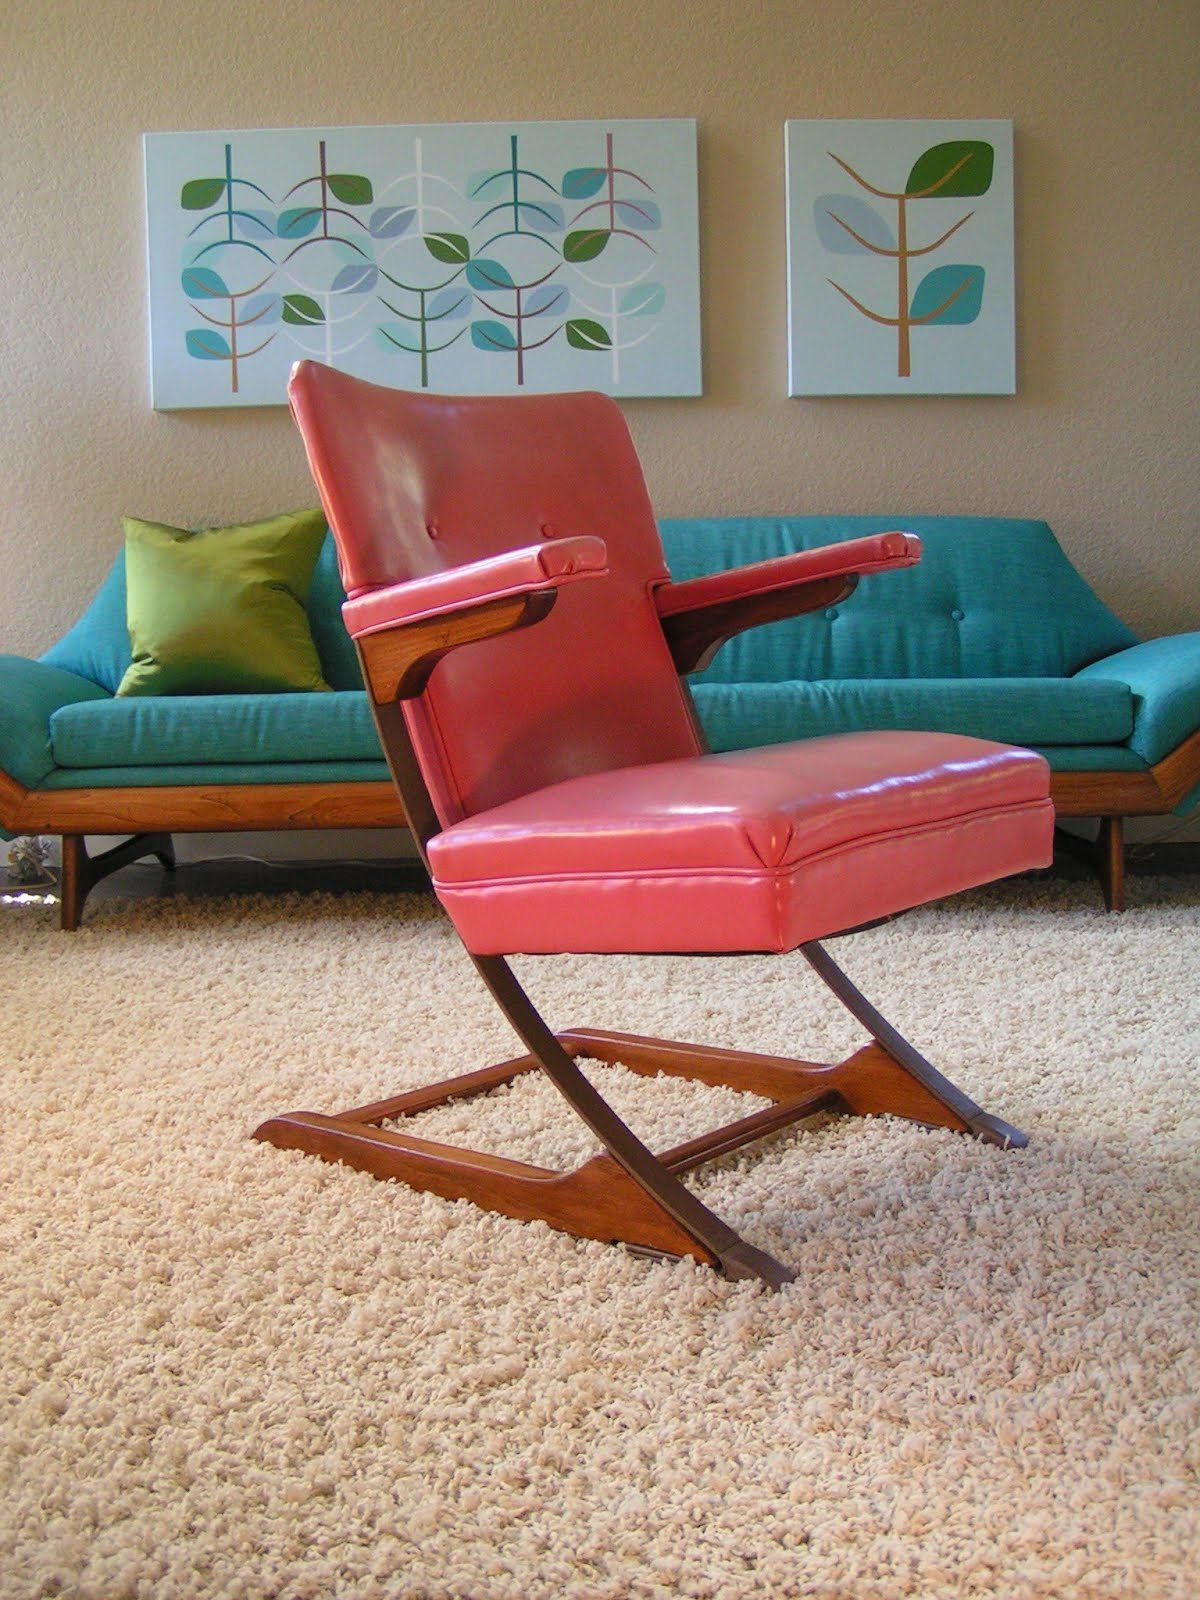 c mid 1950s cool pink lazy d bouncerocking chair manufactured mid century modern - Mid Century Modern Furniture Of The 1950s